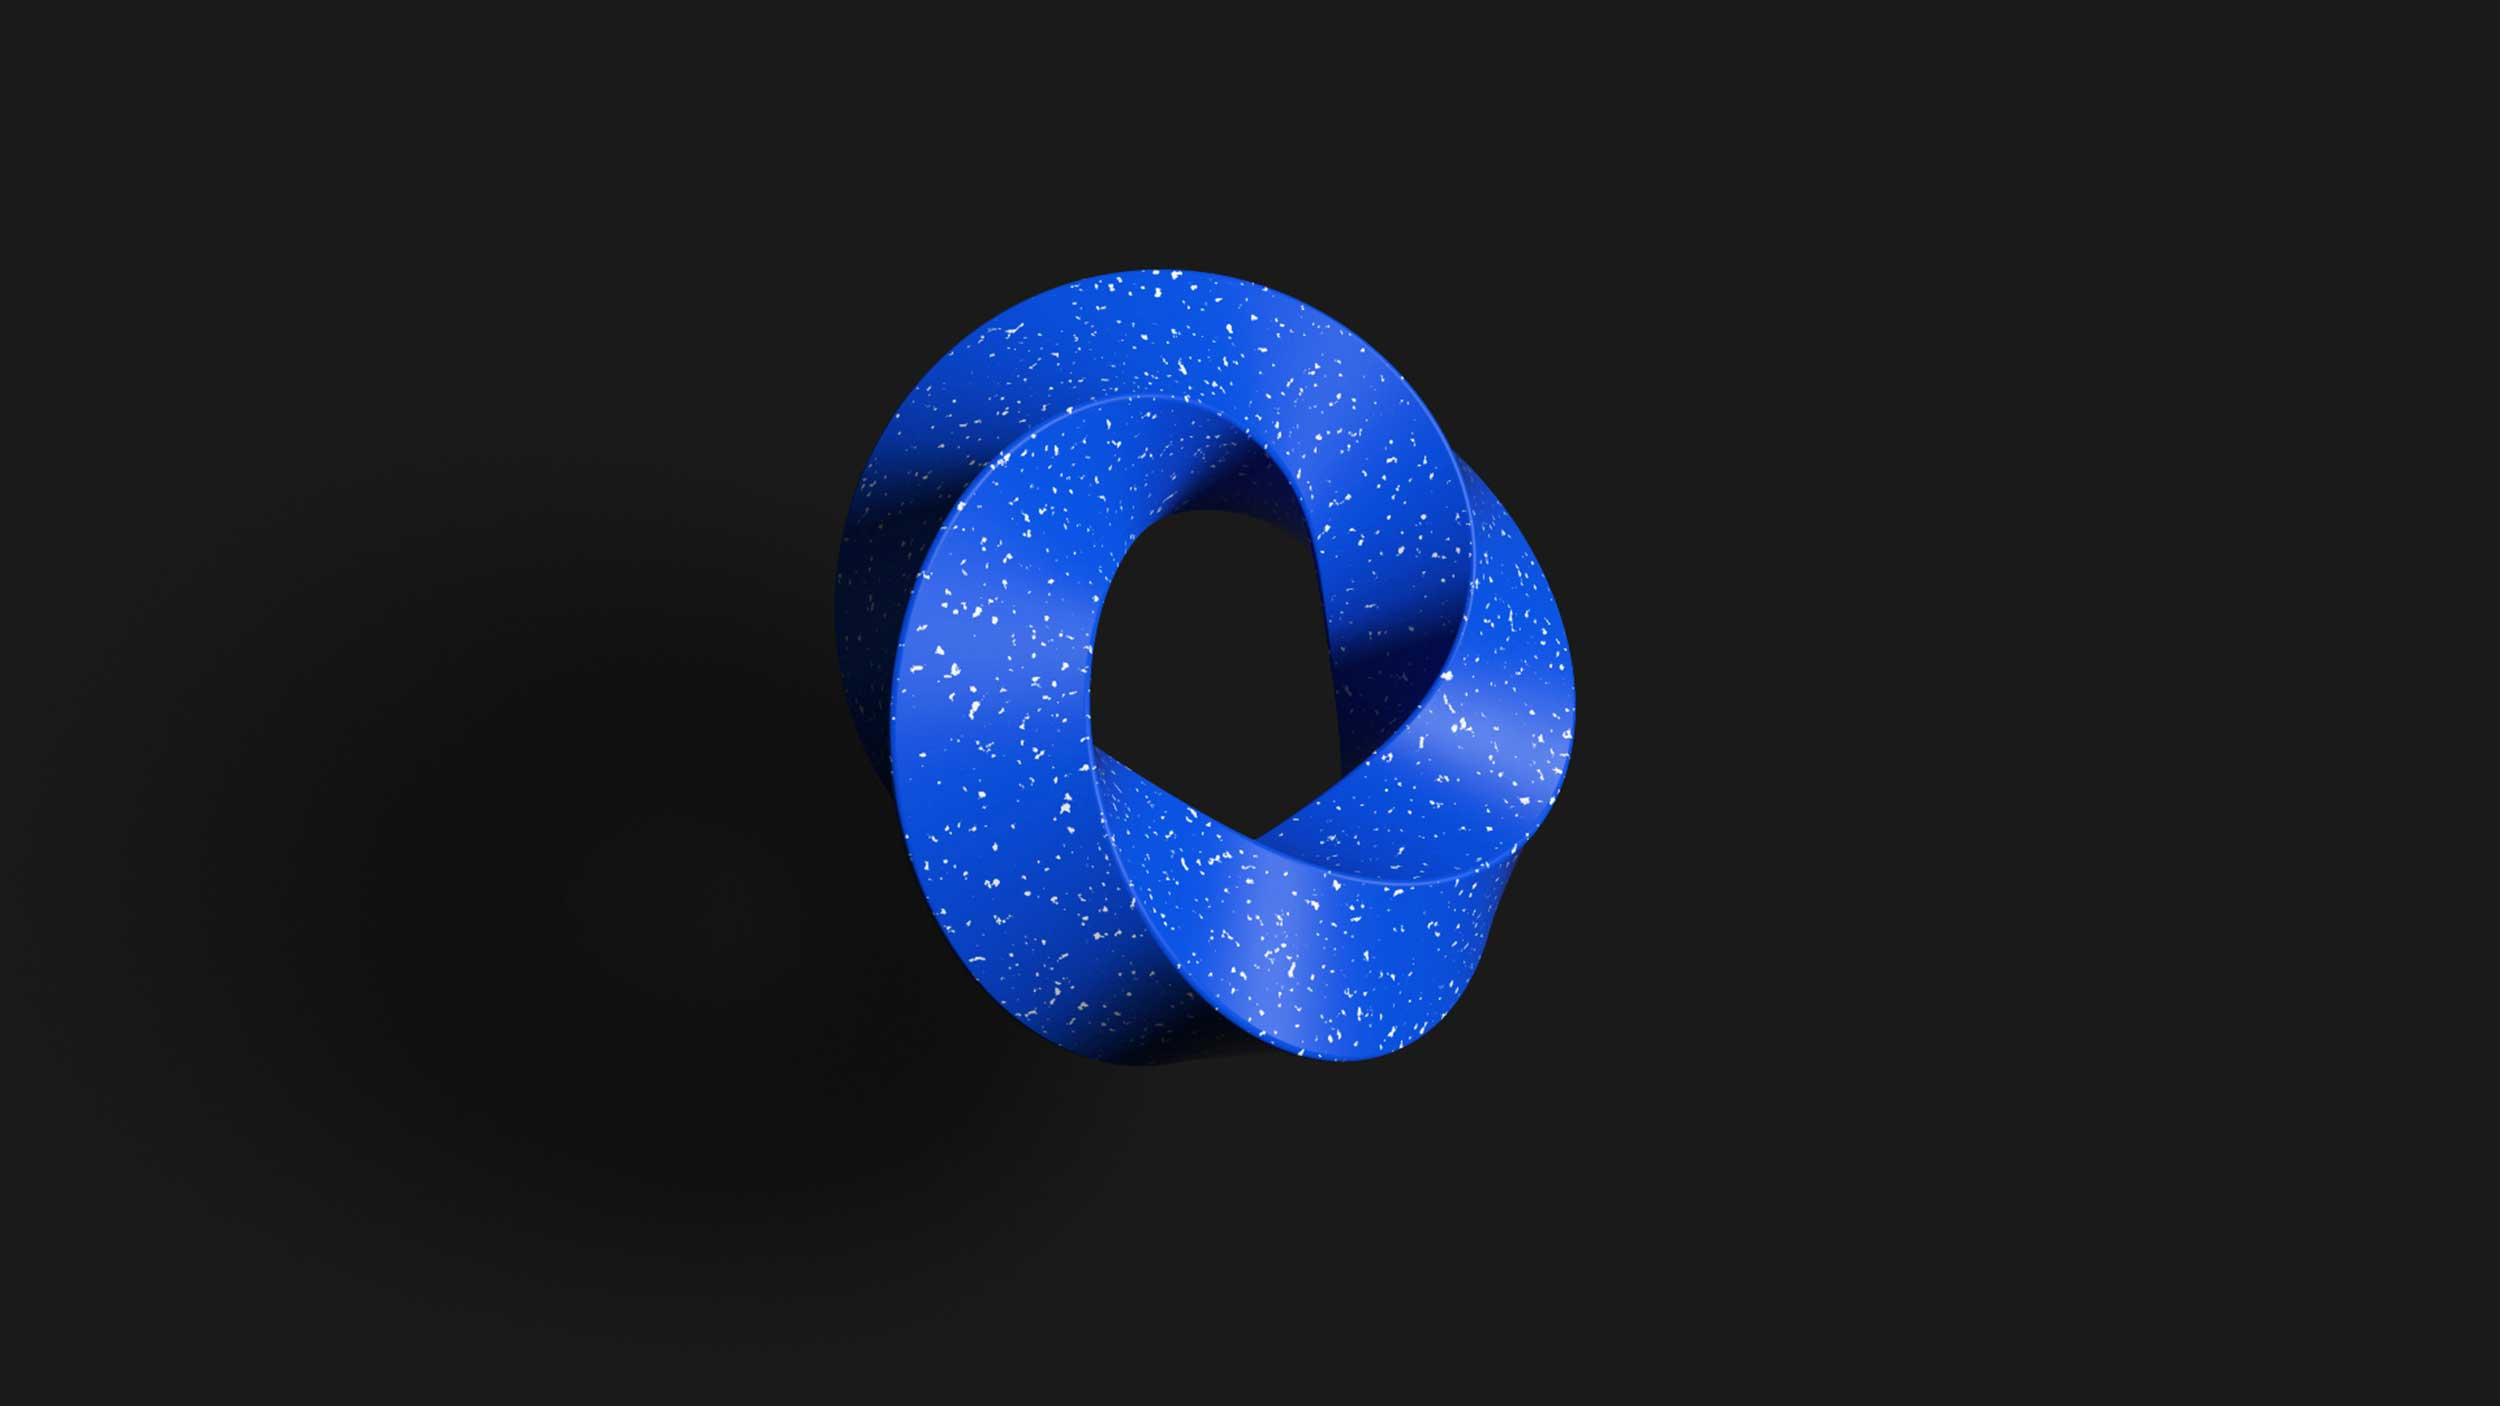 cgi-textured-shapes-blue-specked-plastic-twisted-logo-Nico Castro